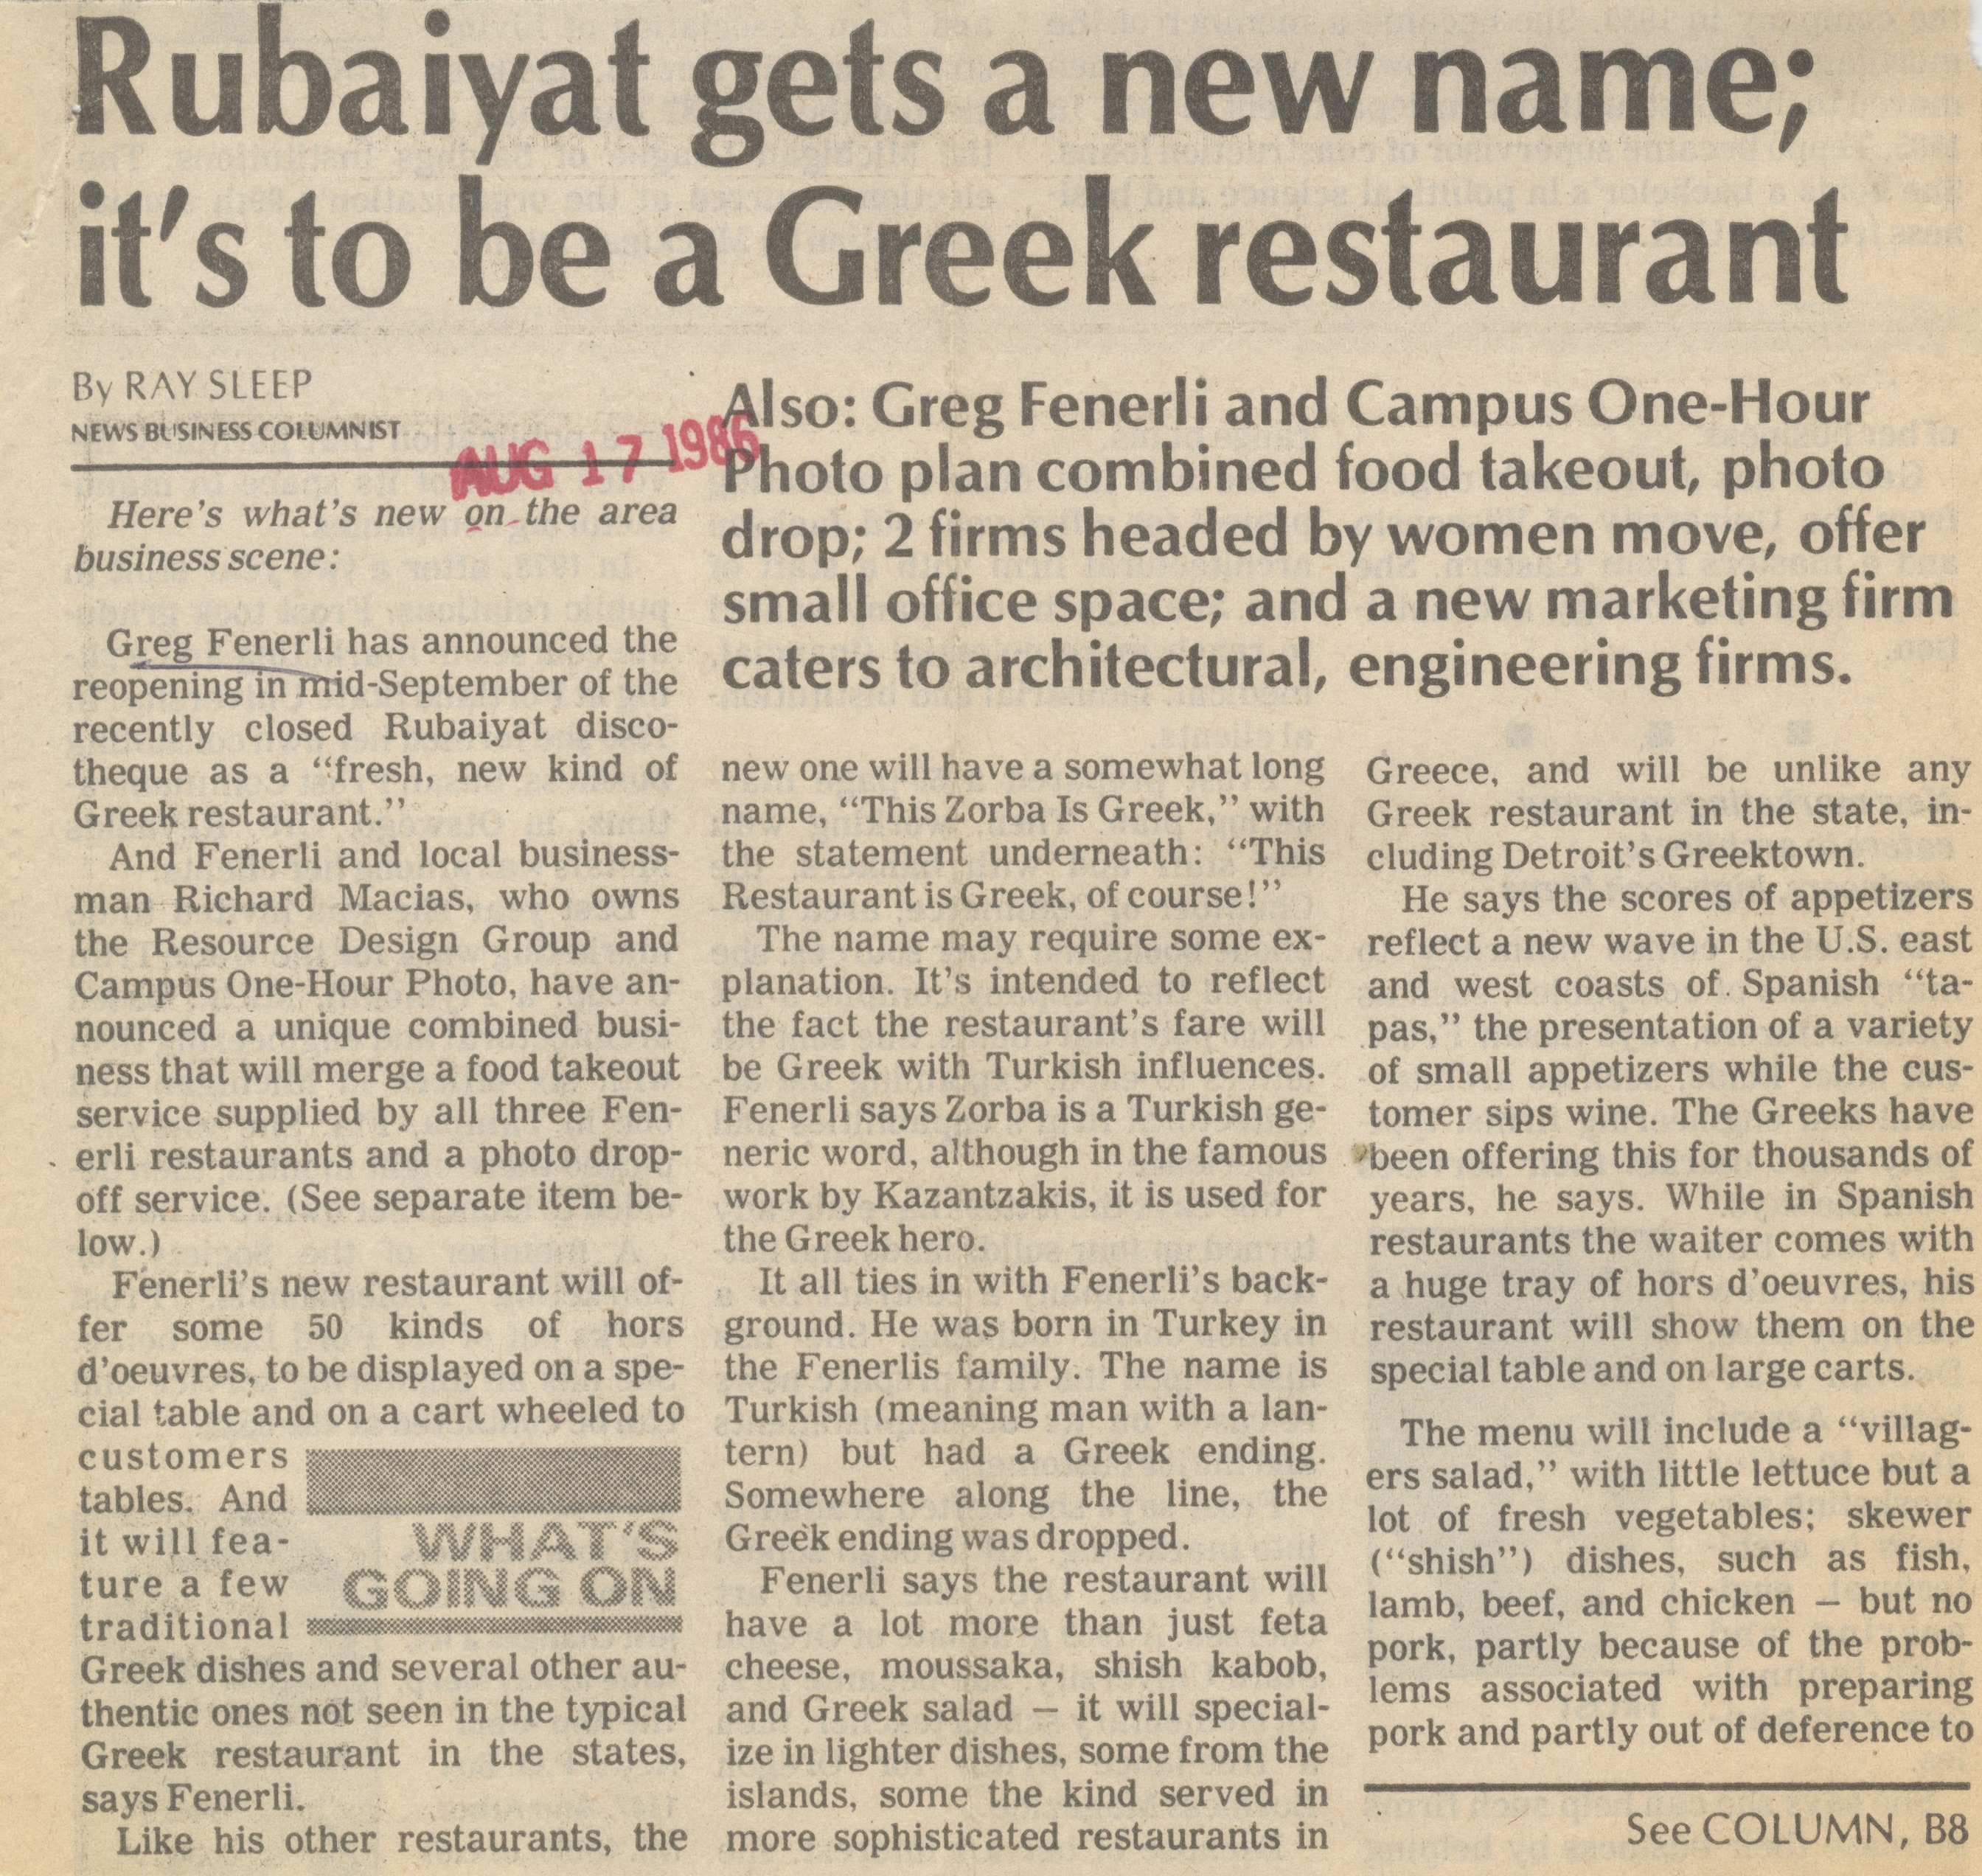 Rubaiyat Gets A New Name; It's To Be A Greek Restaurant image